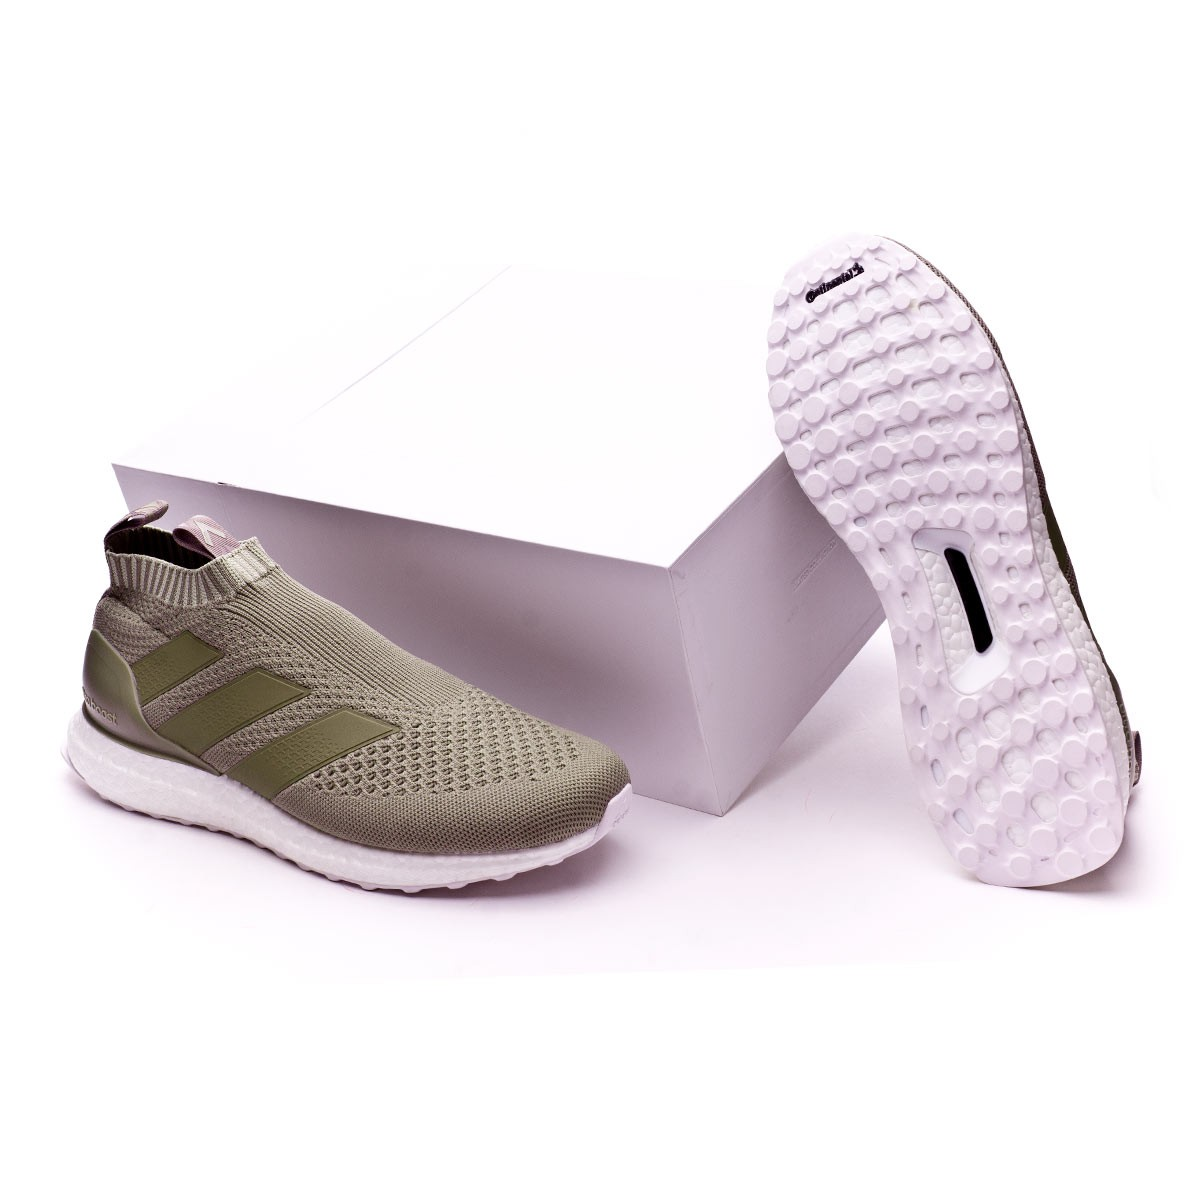 sneakers for cheap 32aff fe216 adidas Ace 16+ Purecontrol Ultraboost Trainers